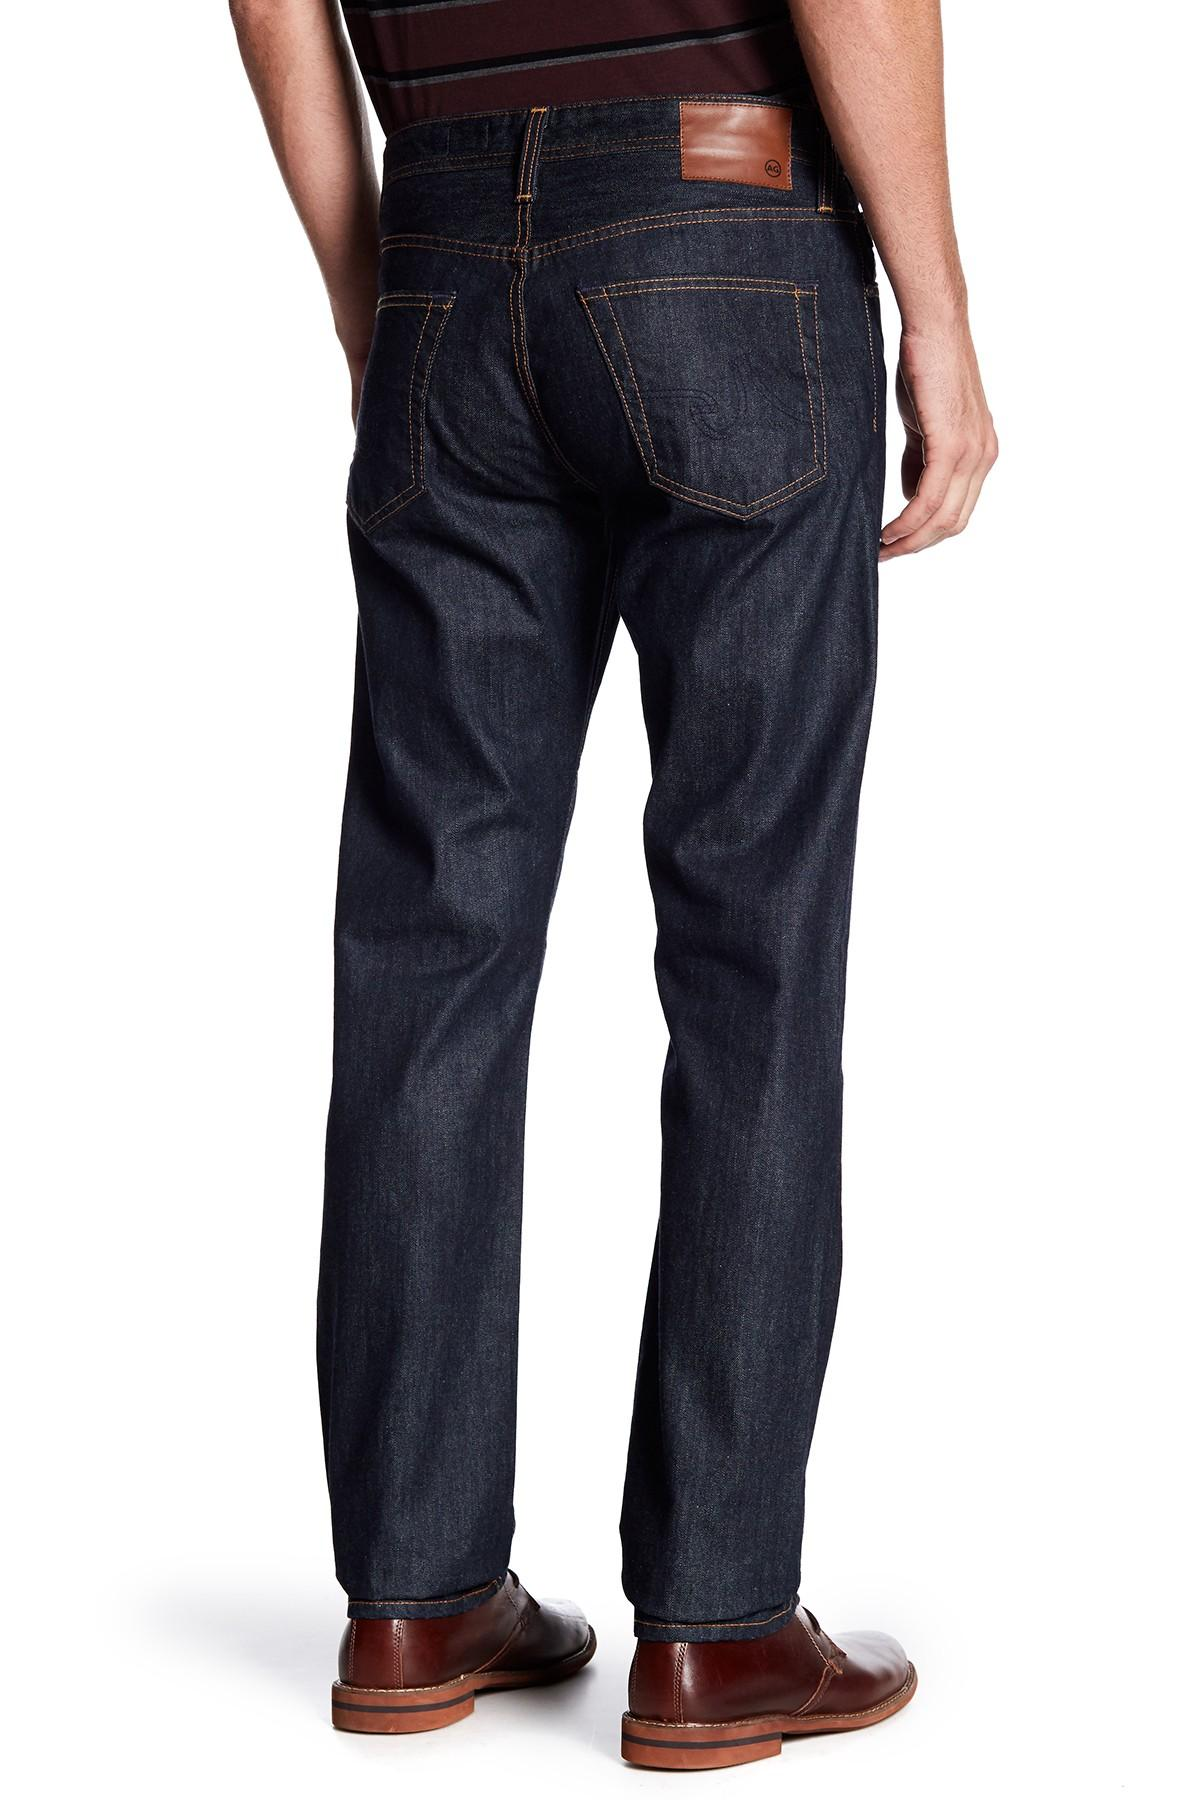 best supplier better price latest trends of 2019 Graduate Tailored Dst Jeans - 34